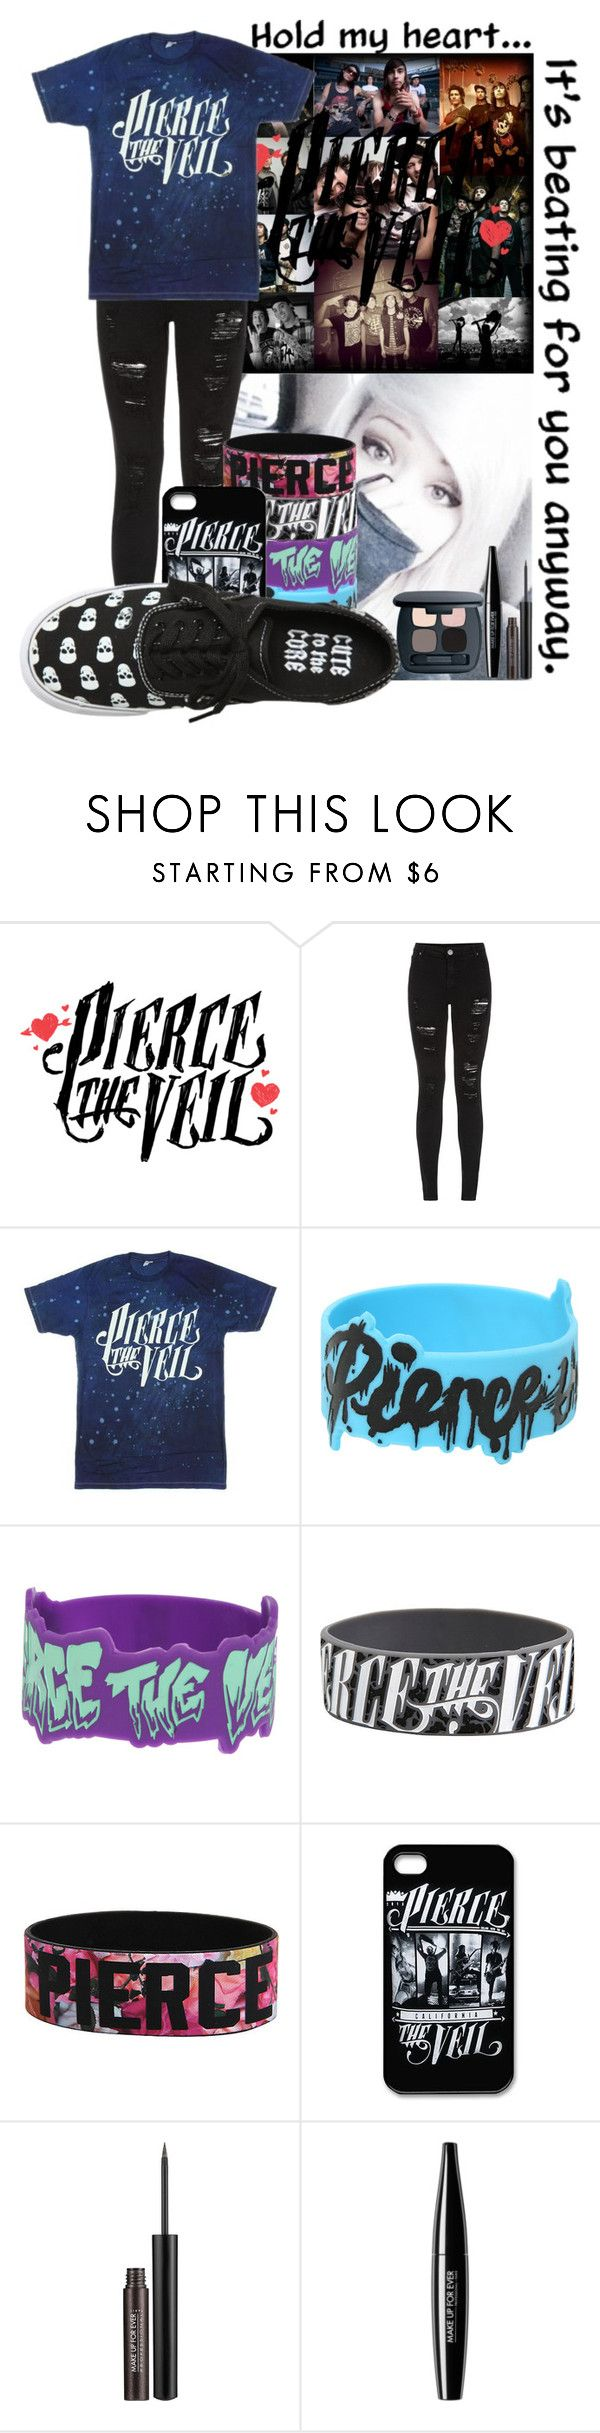 """Pierce The Veil Tribute (Read The D. NOOOWWW)"" by temper61 ❤ liked on Polyvore featuring ADAM, Parisian, MAKE UP FOR EVER and Bare Escentuals"